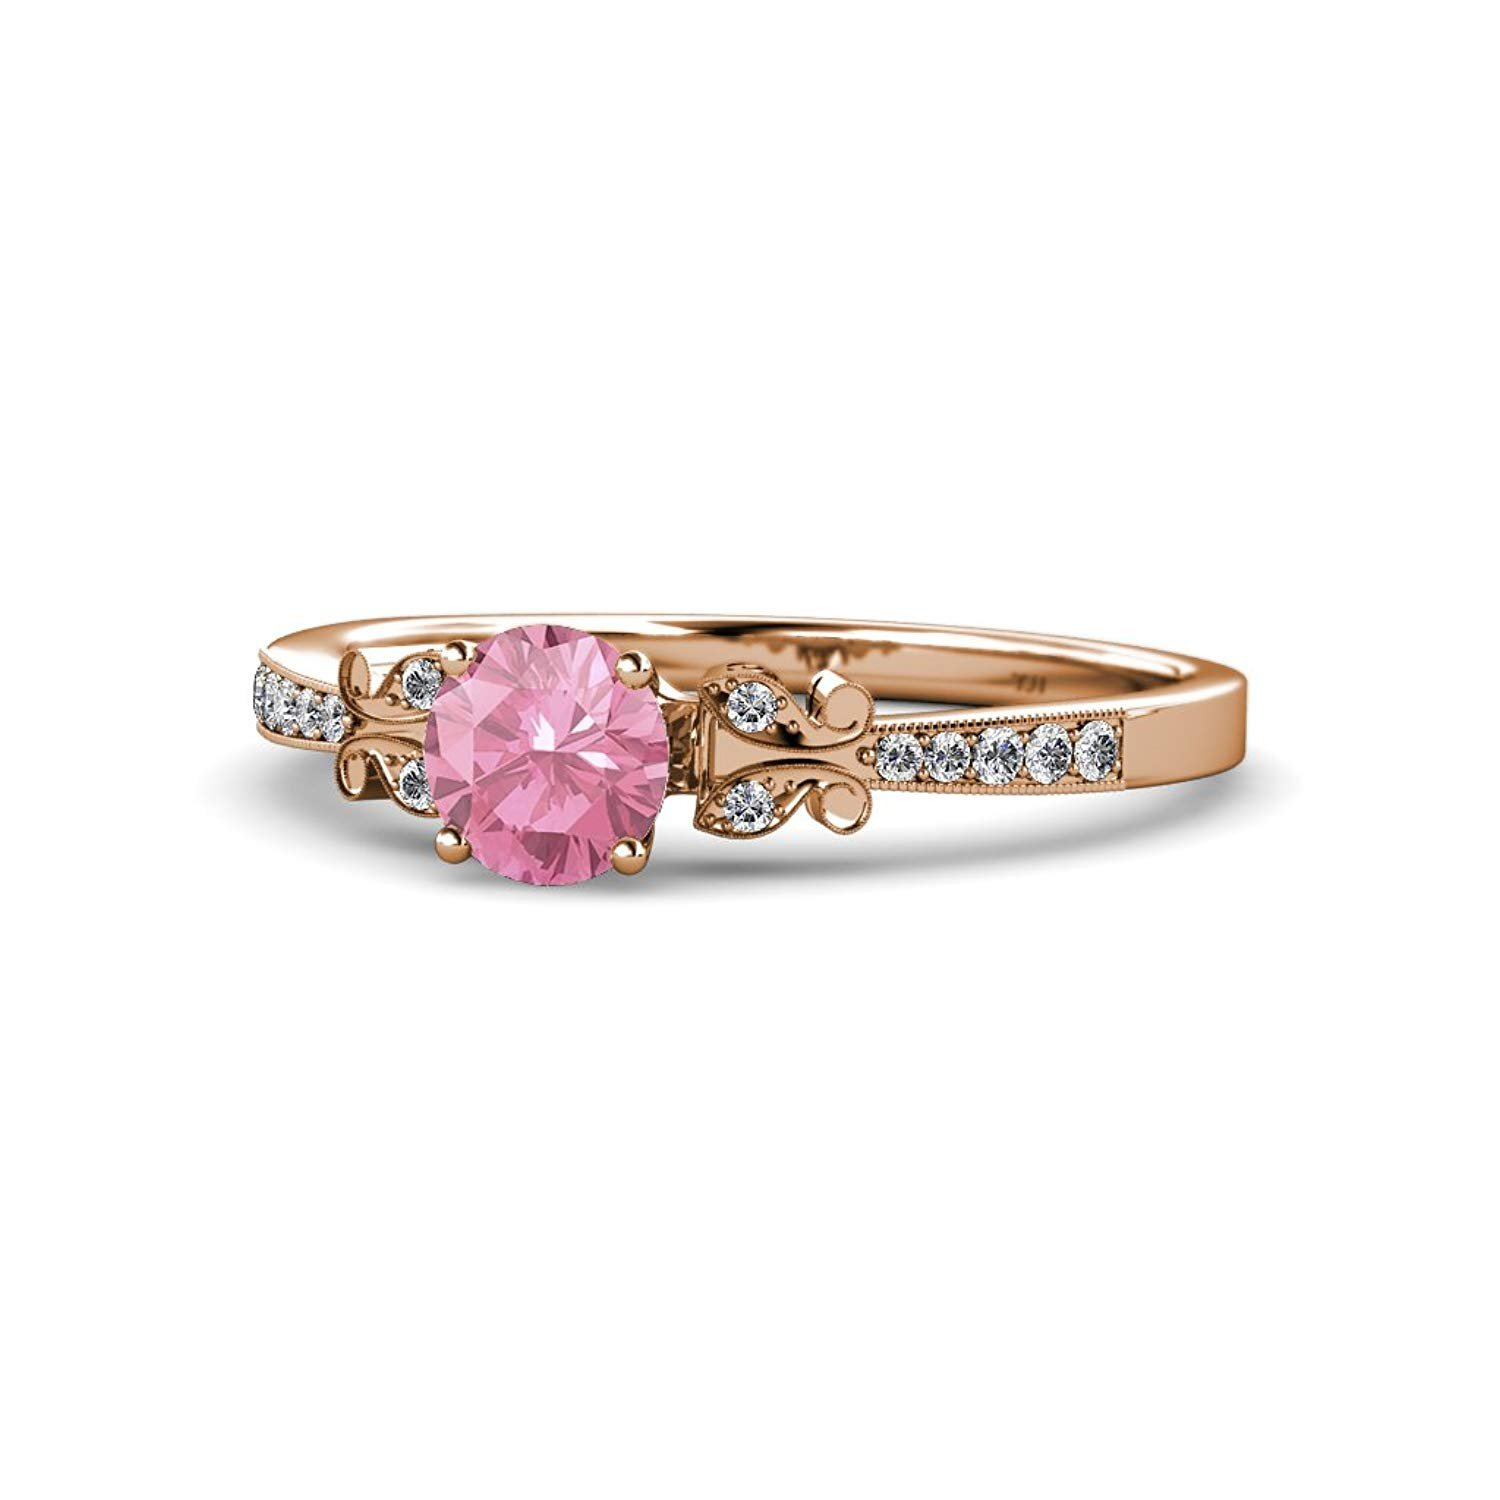 Pink Tourmaline & Diamond Milgrain Work Butterfly Engagement Ring 1.04 cttw in 14K Rose Gold.size 6.5 by TriJewels